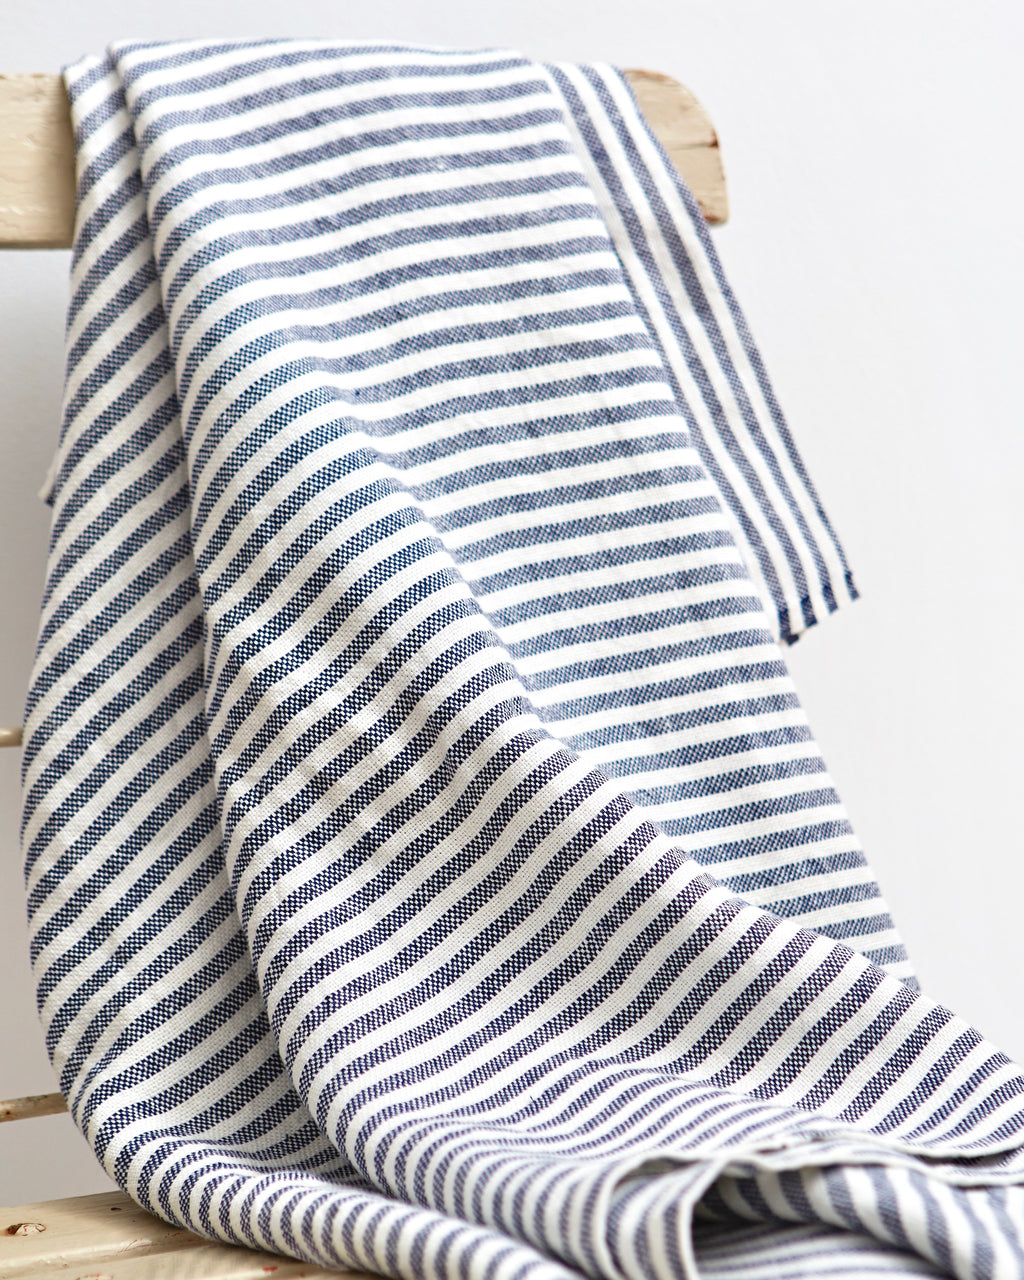 Chambray Linen Blankets